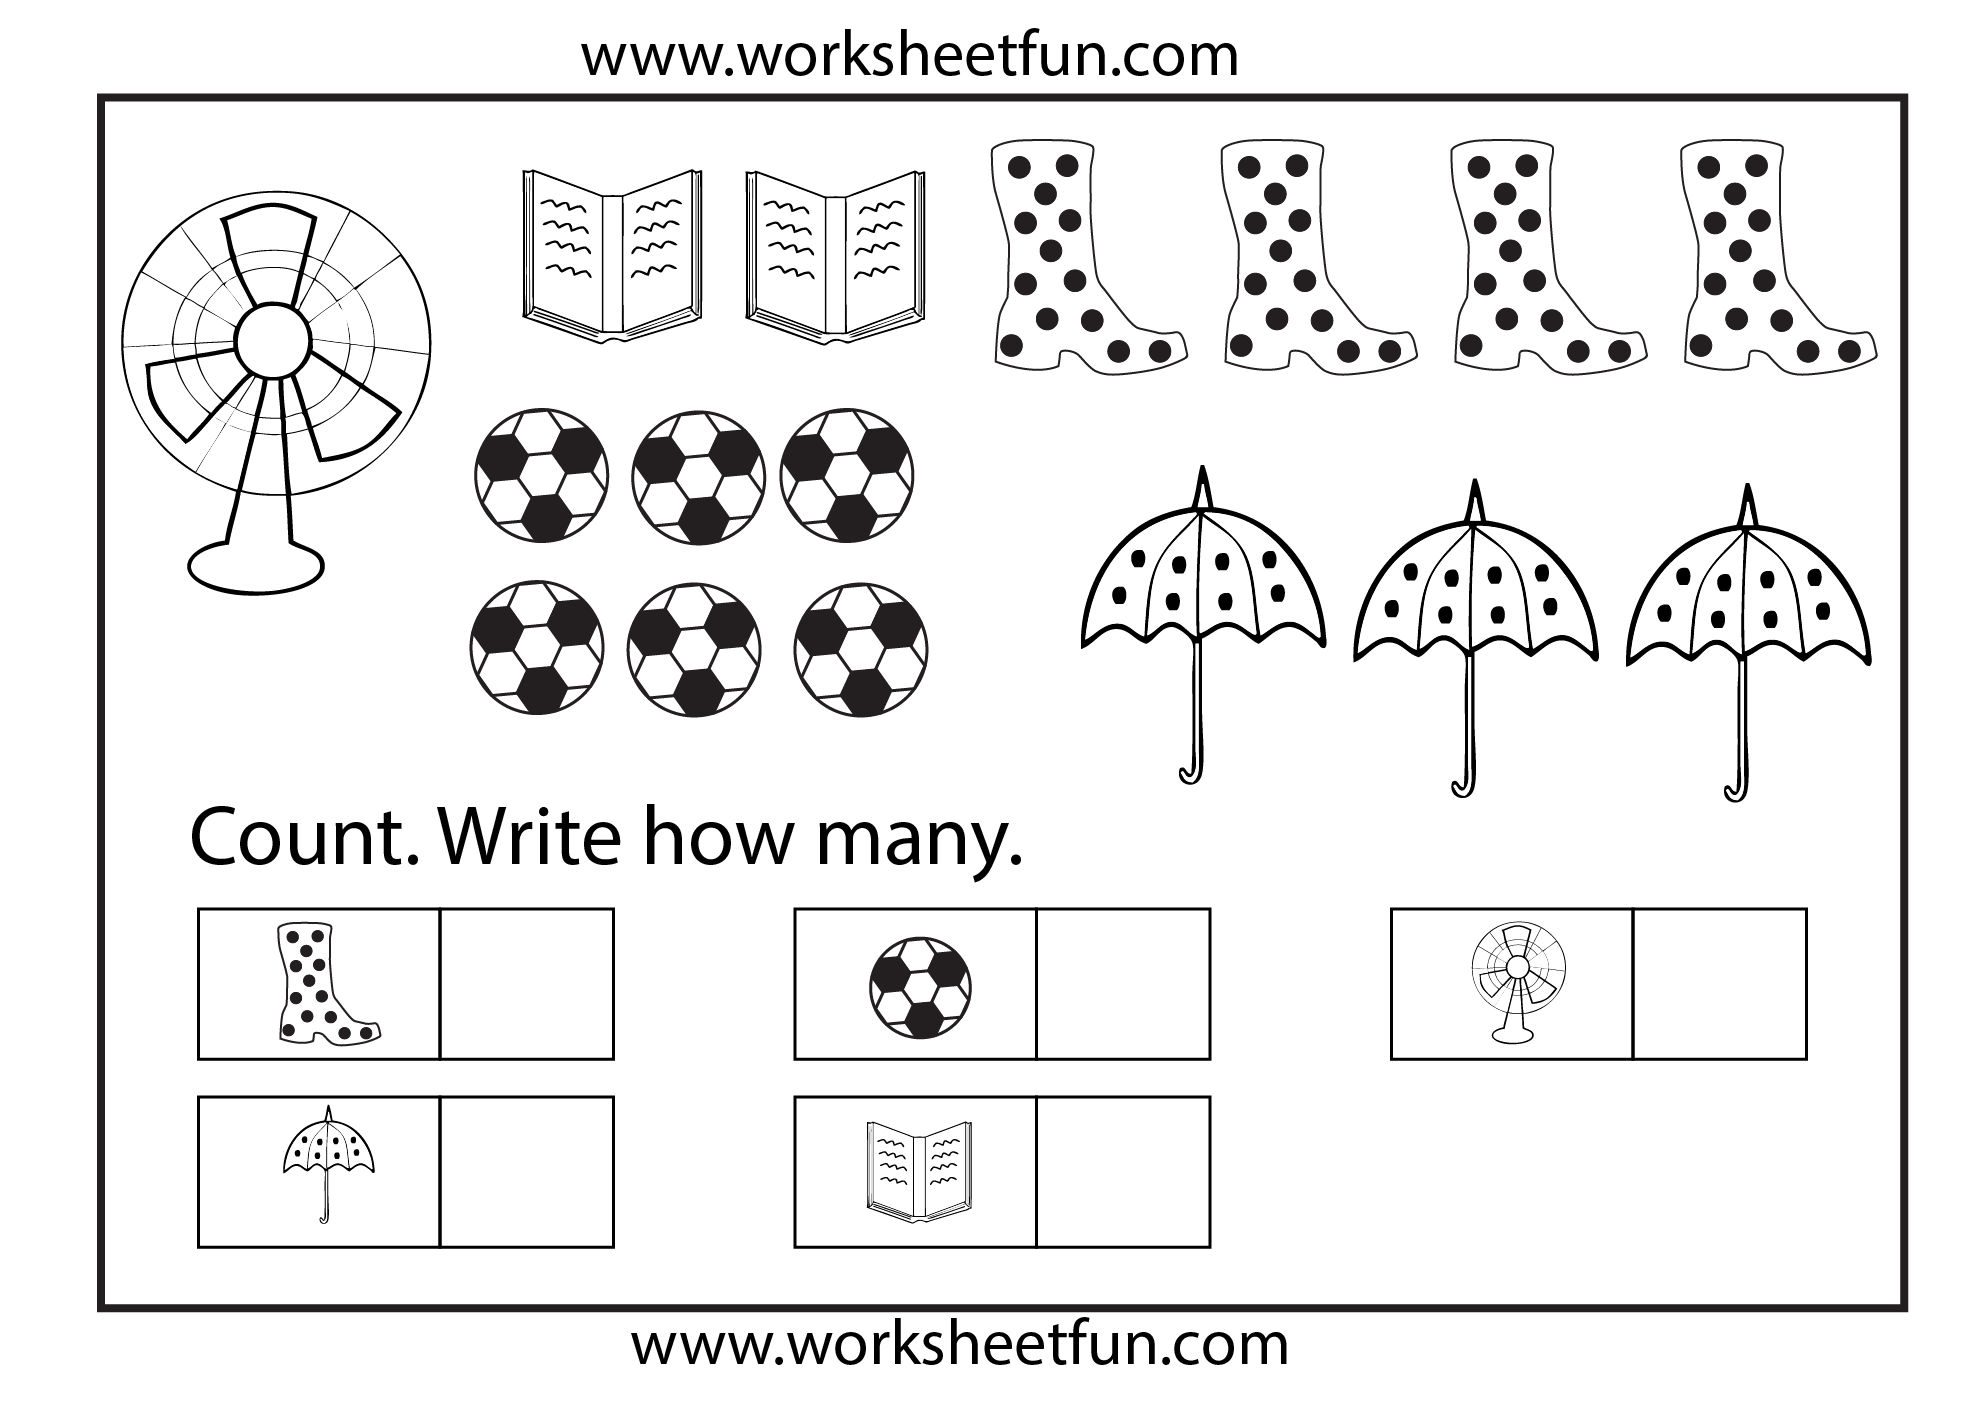 math worksheet : kindergarten counting worksheets 1 10  worksheets for education : Kindergarten Worksheets Numbers 1 10